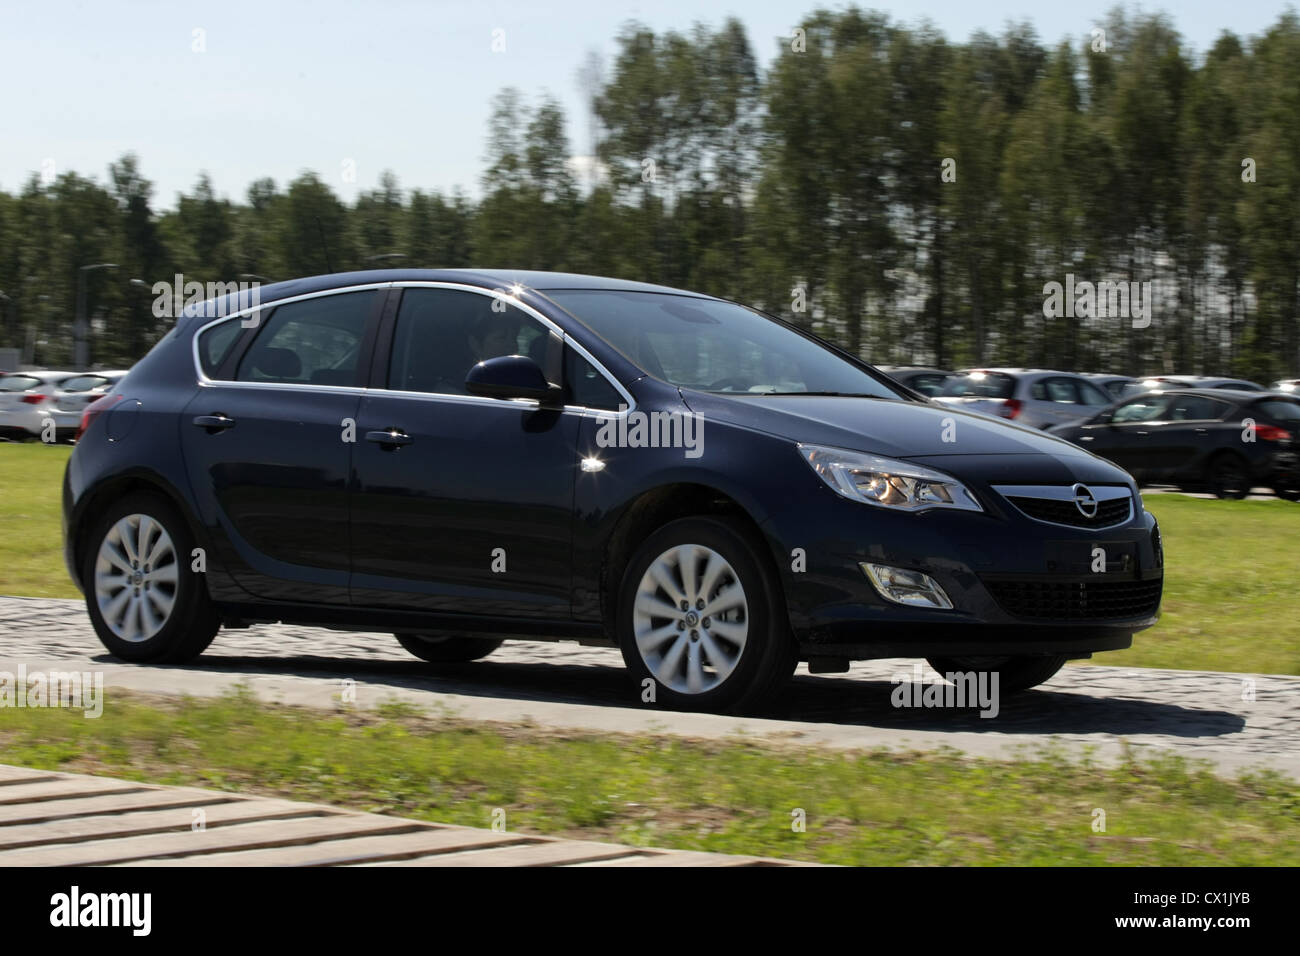 LENINGRAD REGION, RUSSIA. JUNE 29, 2010. This new generation Opel Astra has rolled off the production line at the - Stock Image